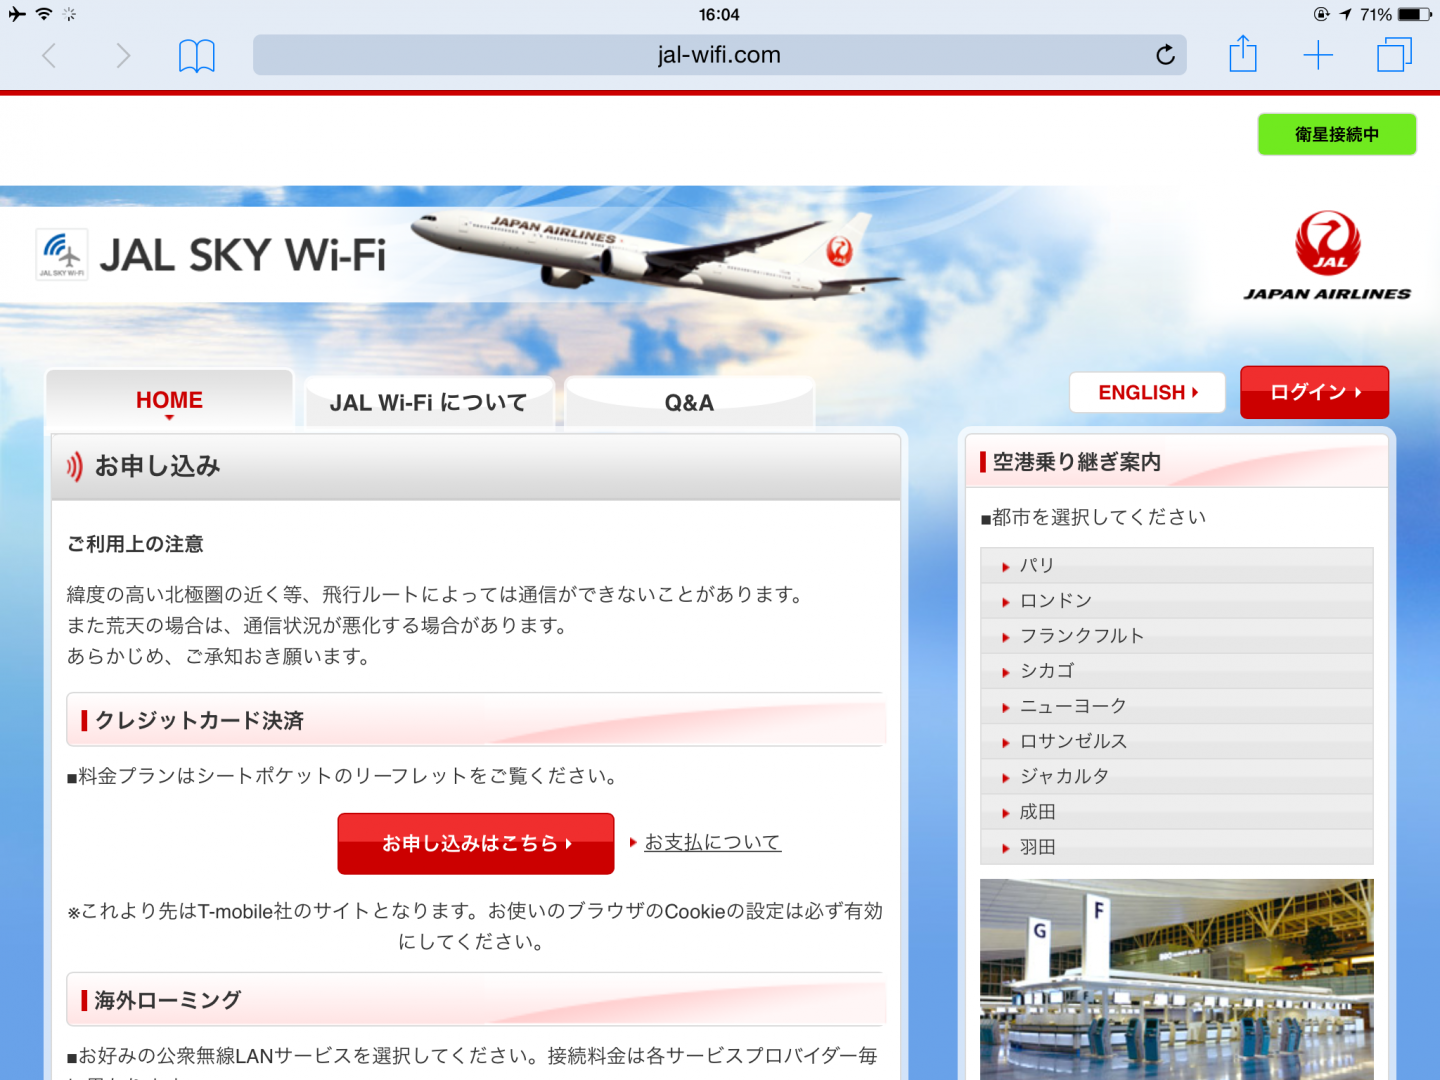 used_jal-sky-wifi_los-angeles_1